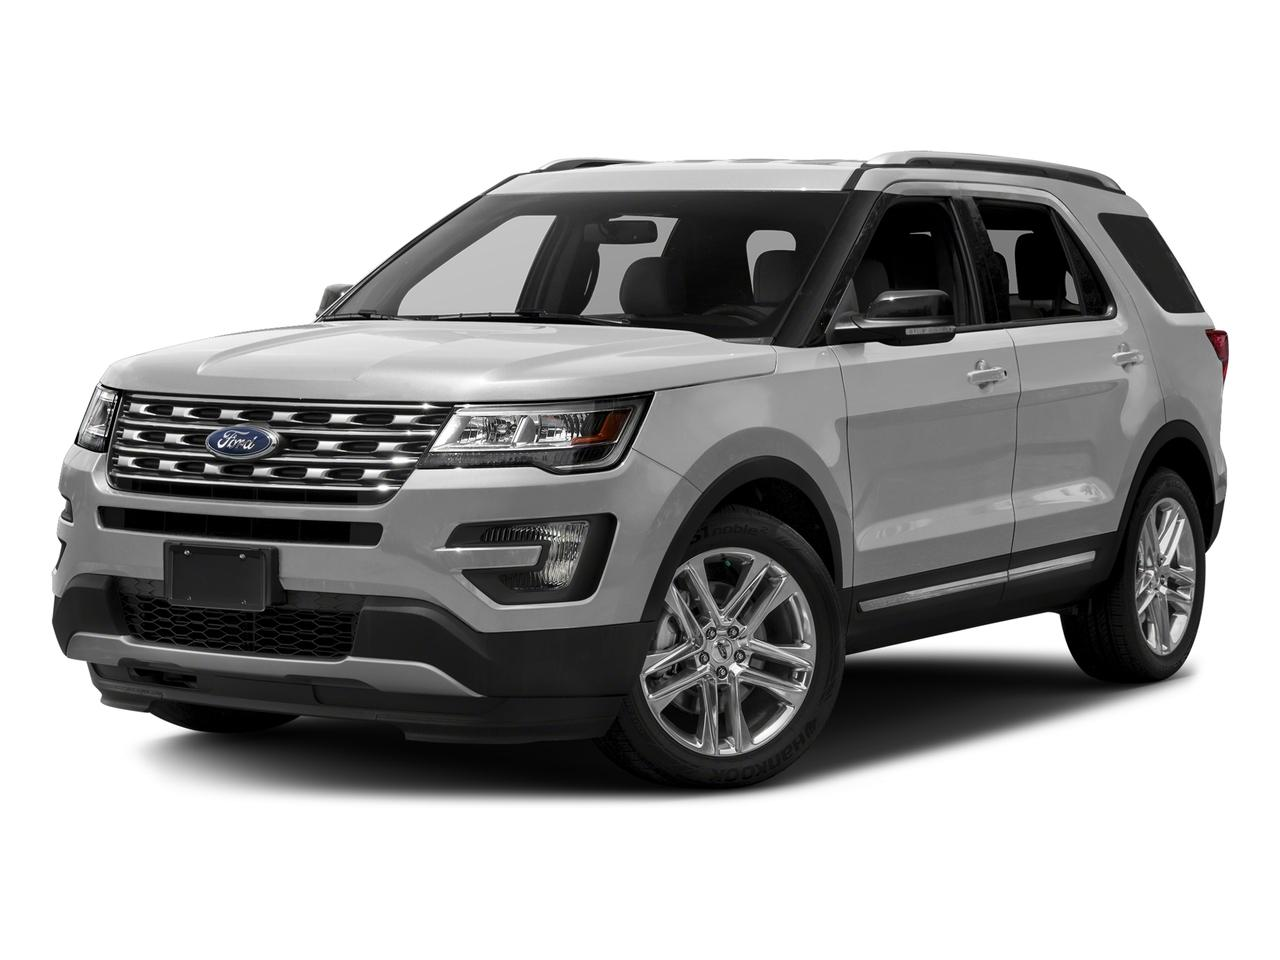 2017 Ford Explorer Vehicle Photo in King George, VA 22485